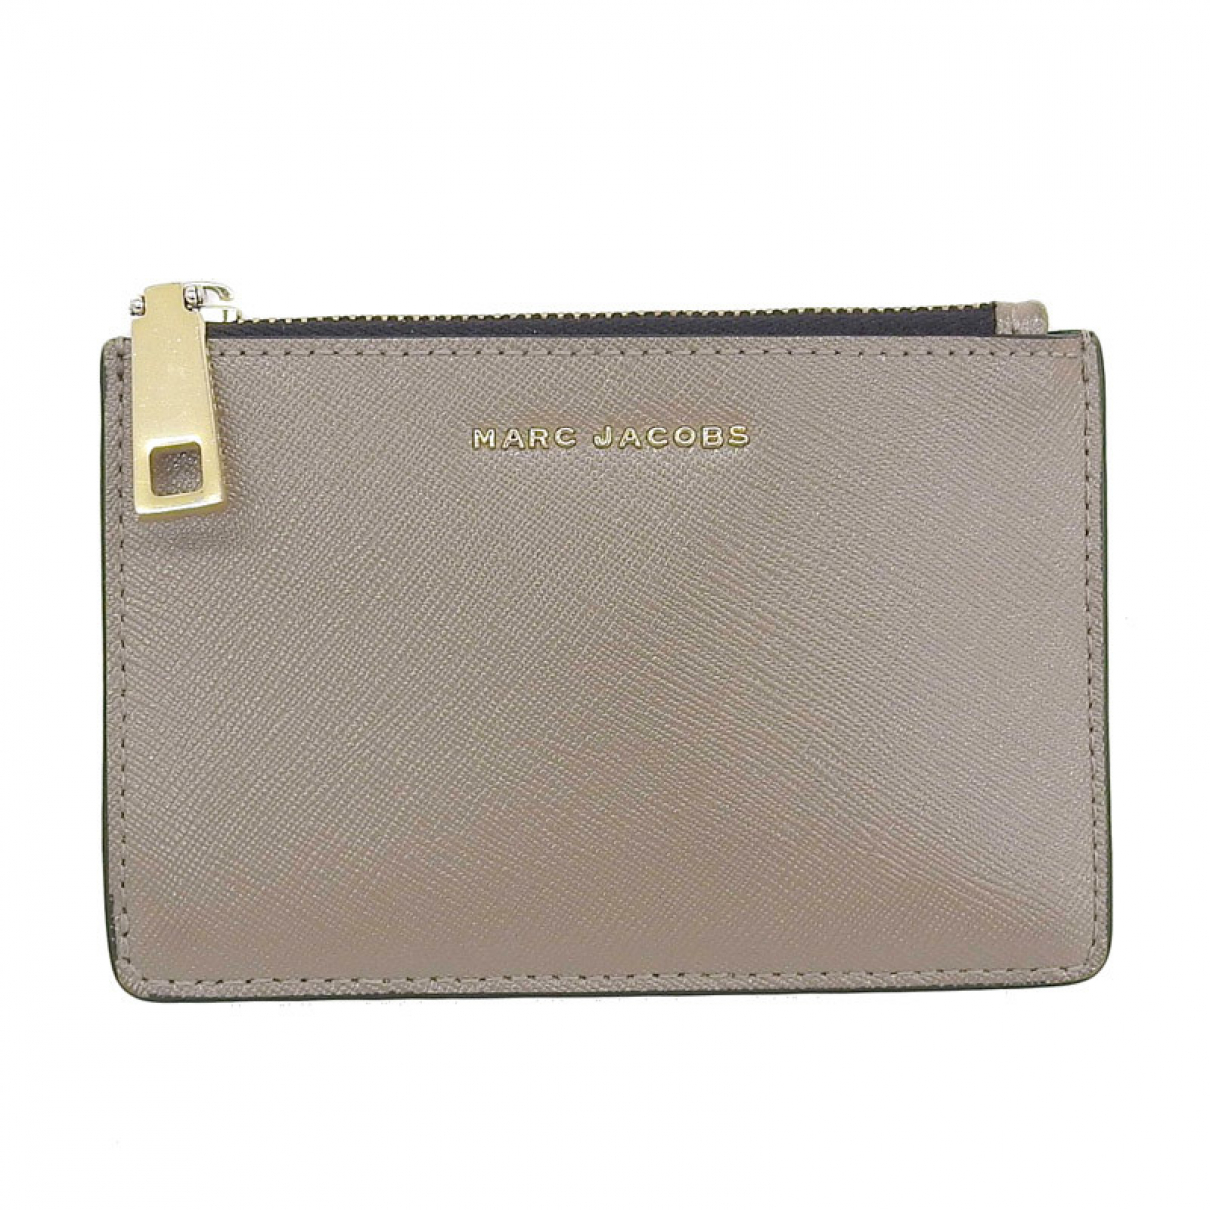 Marc Jacobs N Brown Leather wallet for Women N